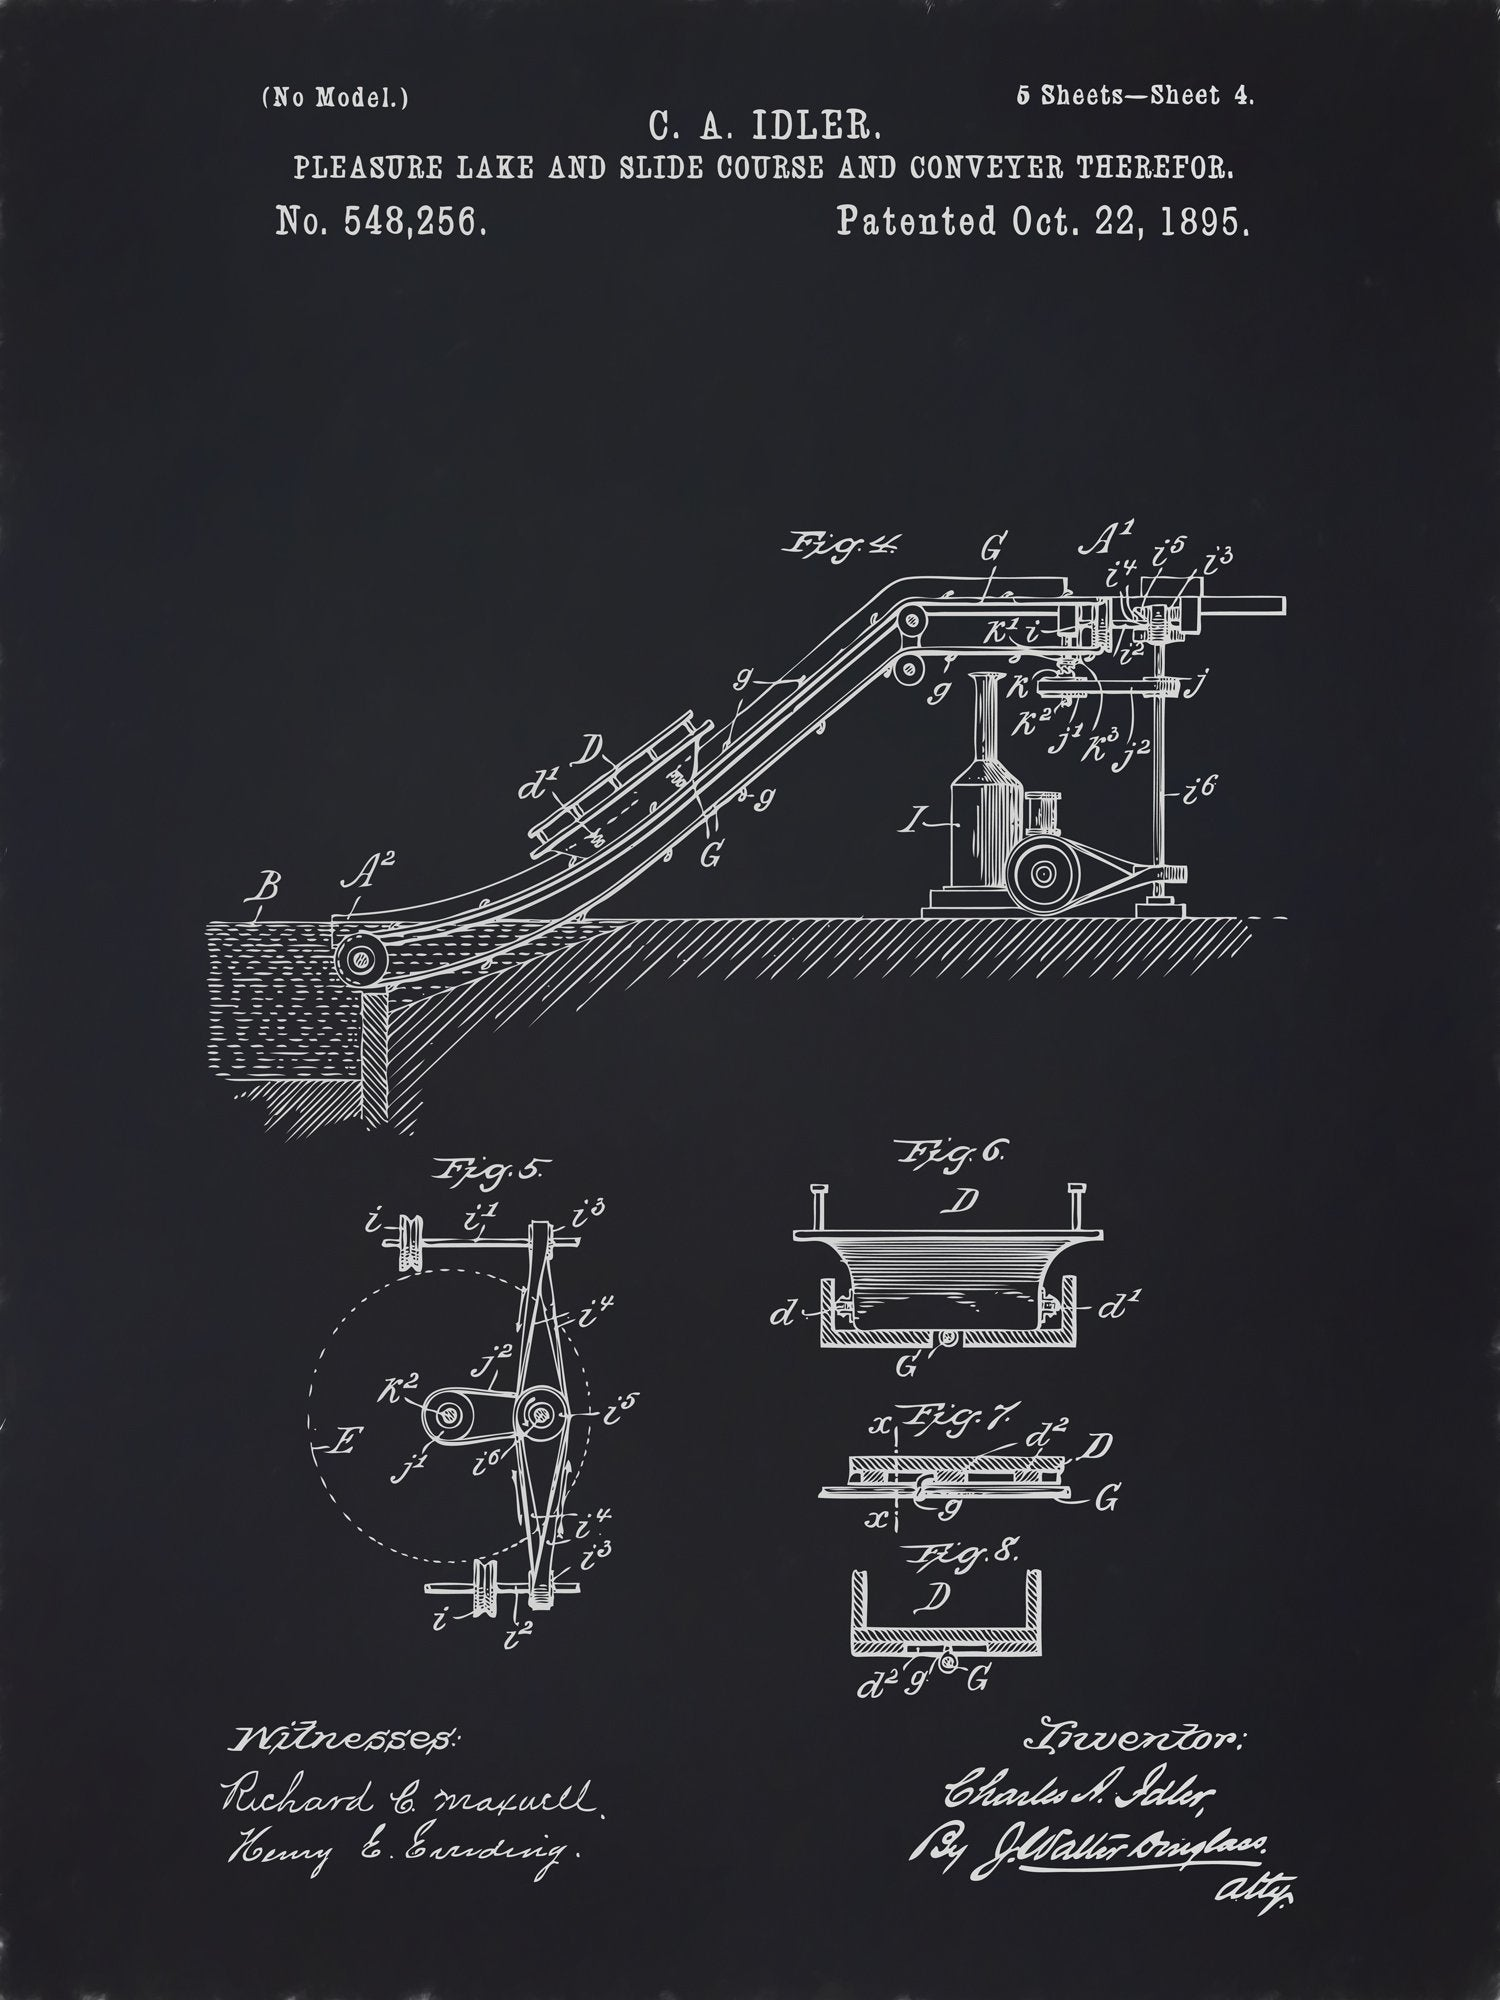 U.S. Patent No. 548256-4 Pleasure Lake and Slide Course and Conveyer Therefor Reworked, Series 2